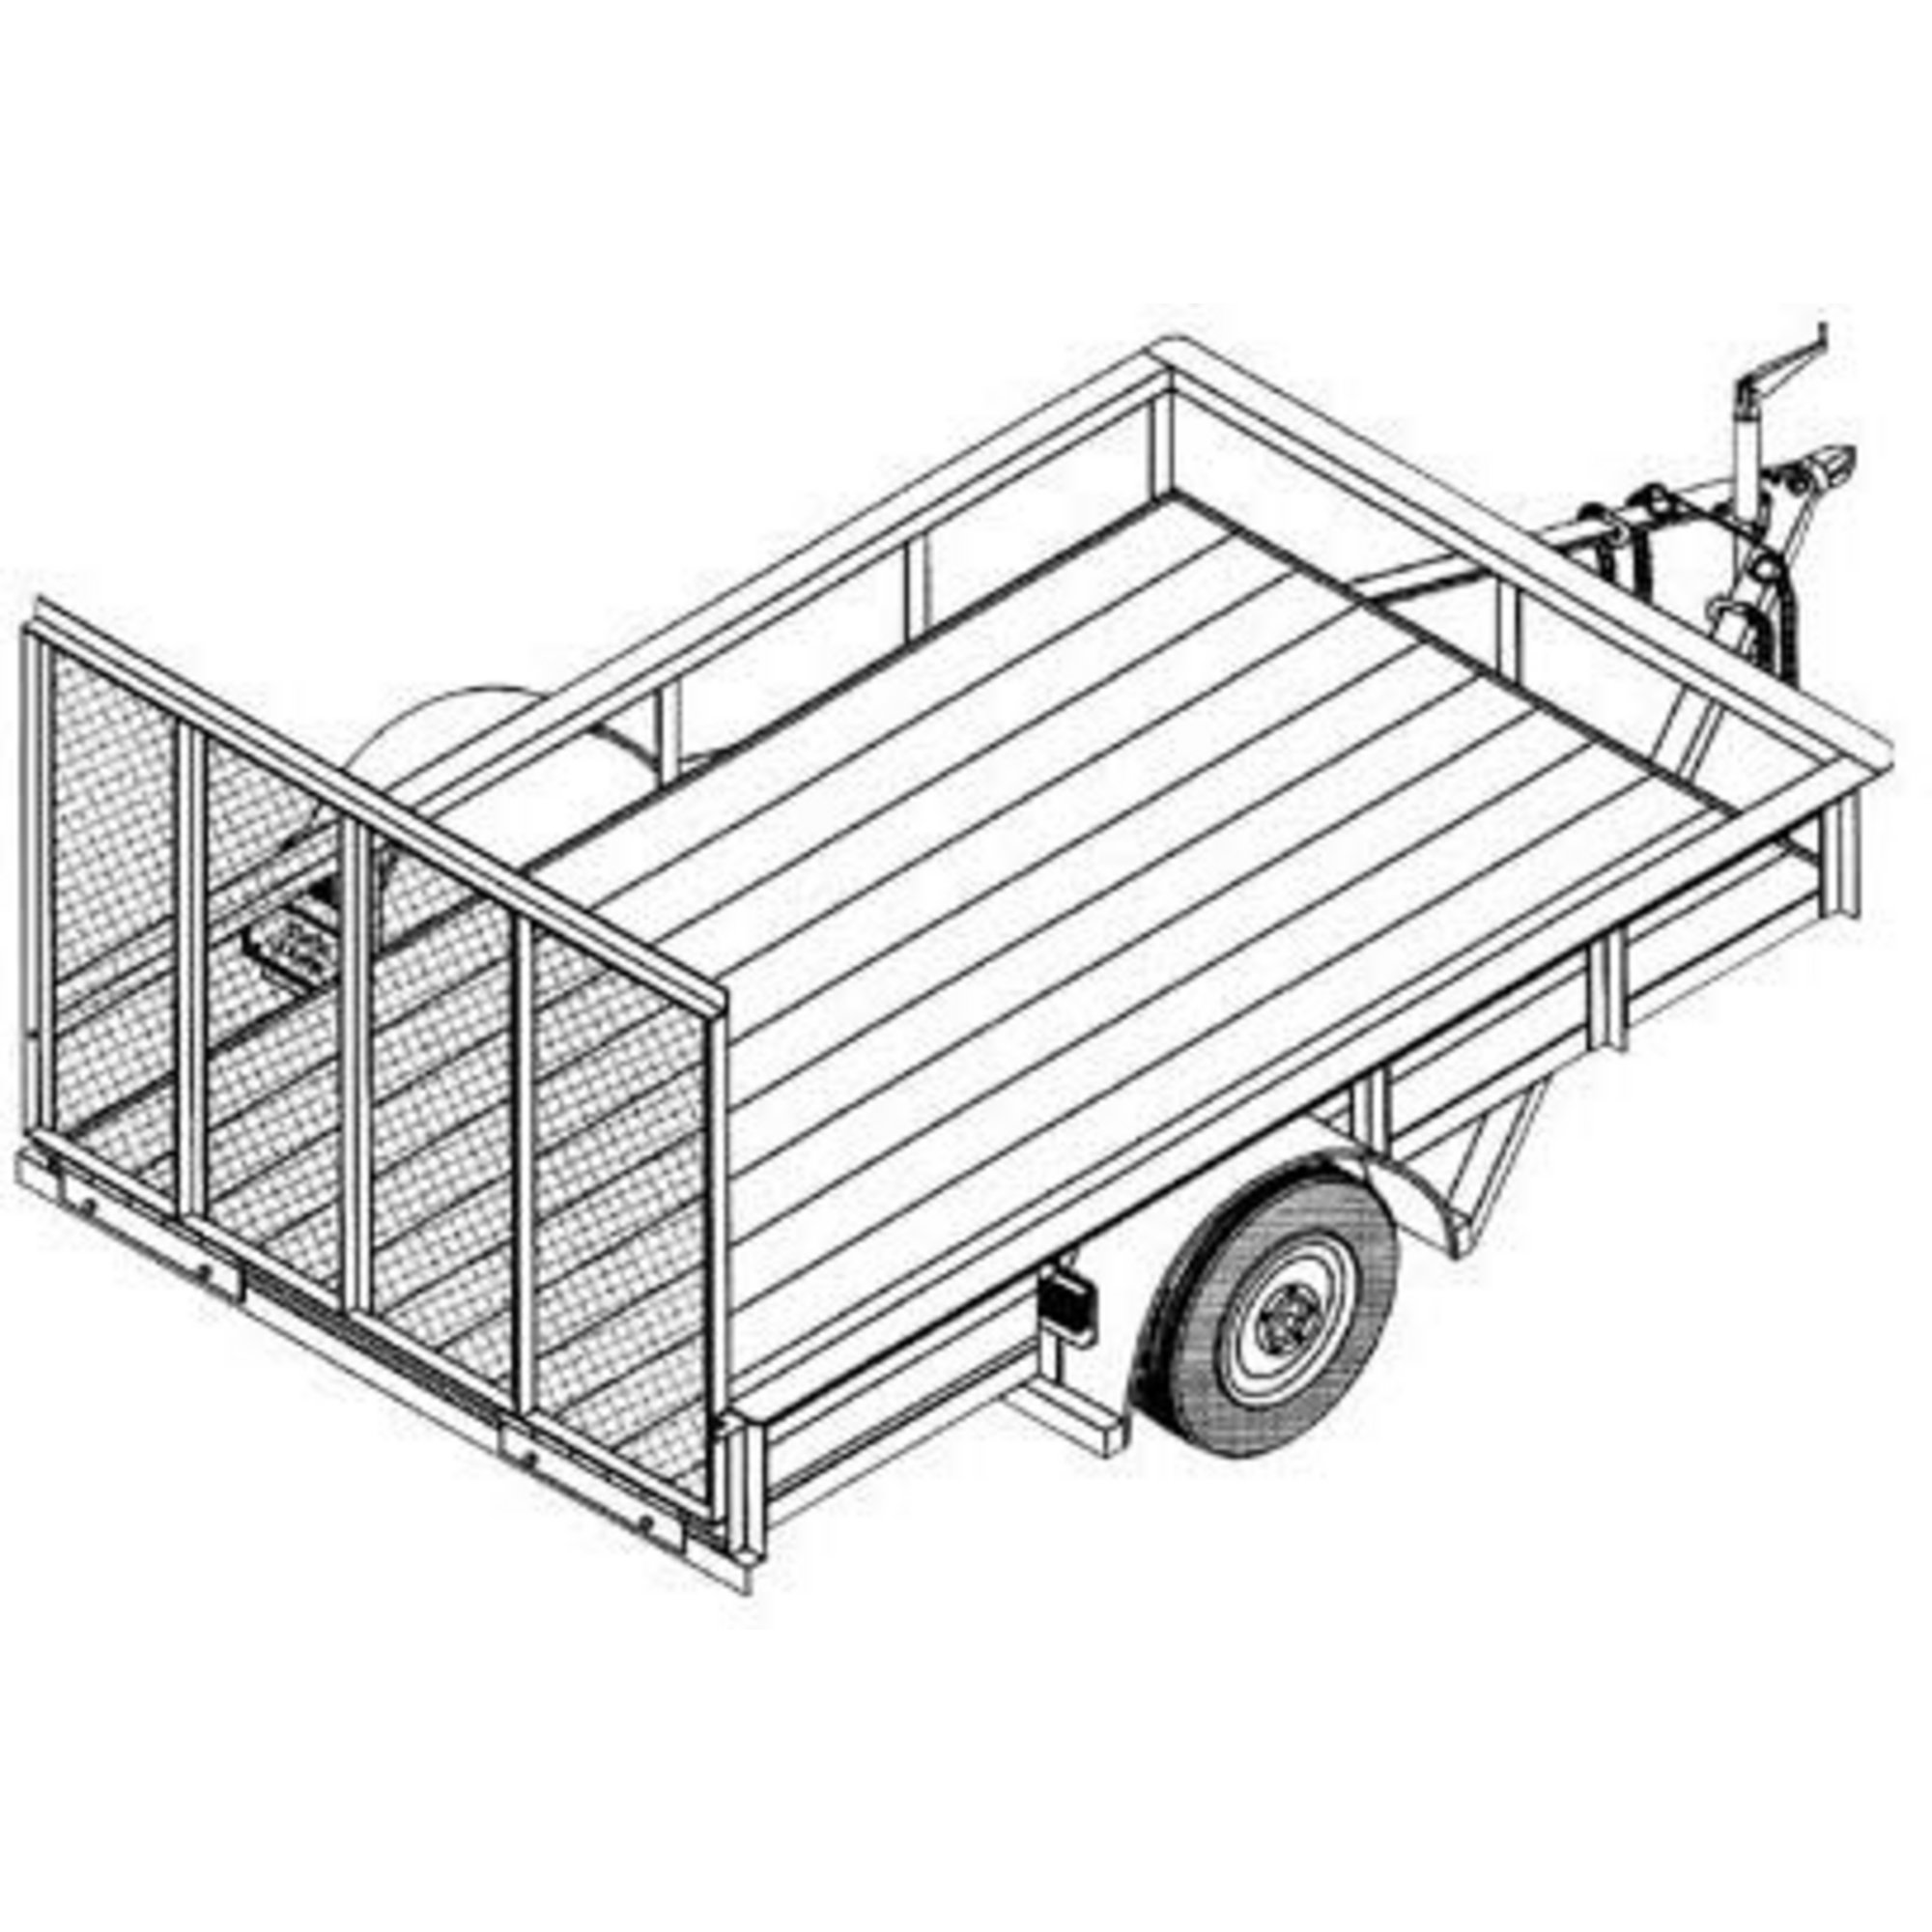 Trailer Drawing At Free For Personal Use Wiring Diagram Box 2000x2000 Utility Blueprints Northern Tool Equipment